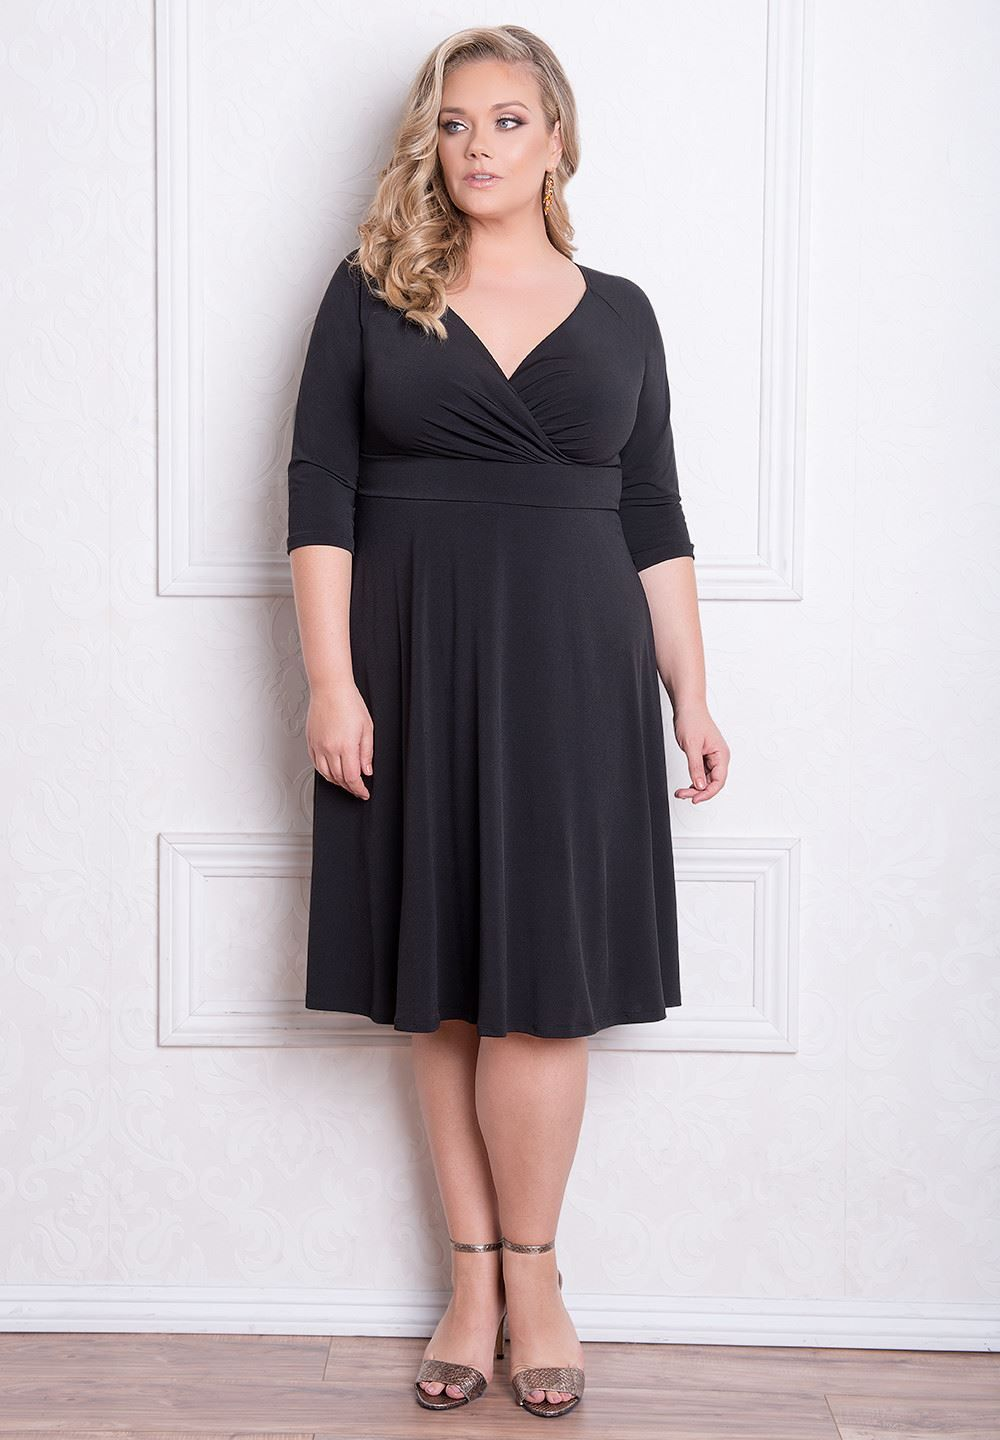 Plus Size Francesca Dress | Fashion | Pinterest